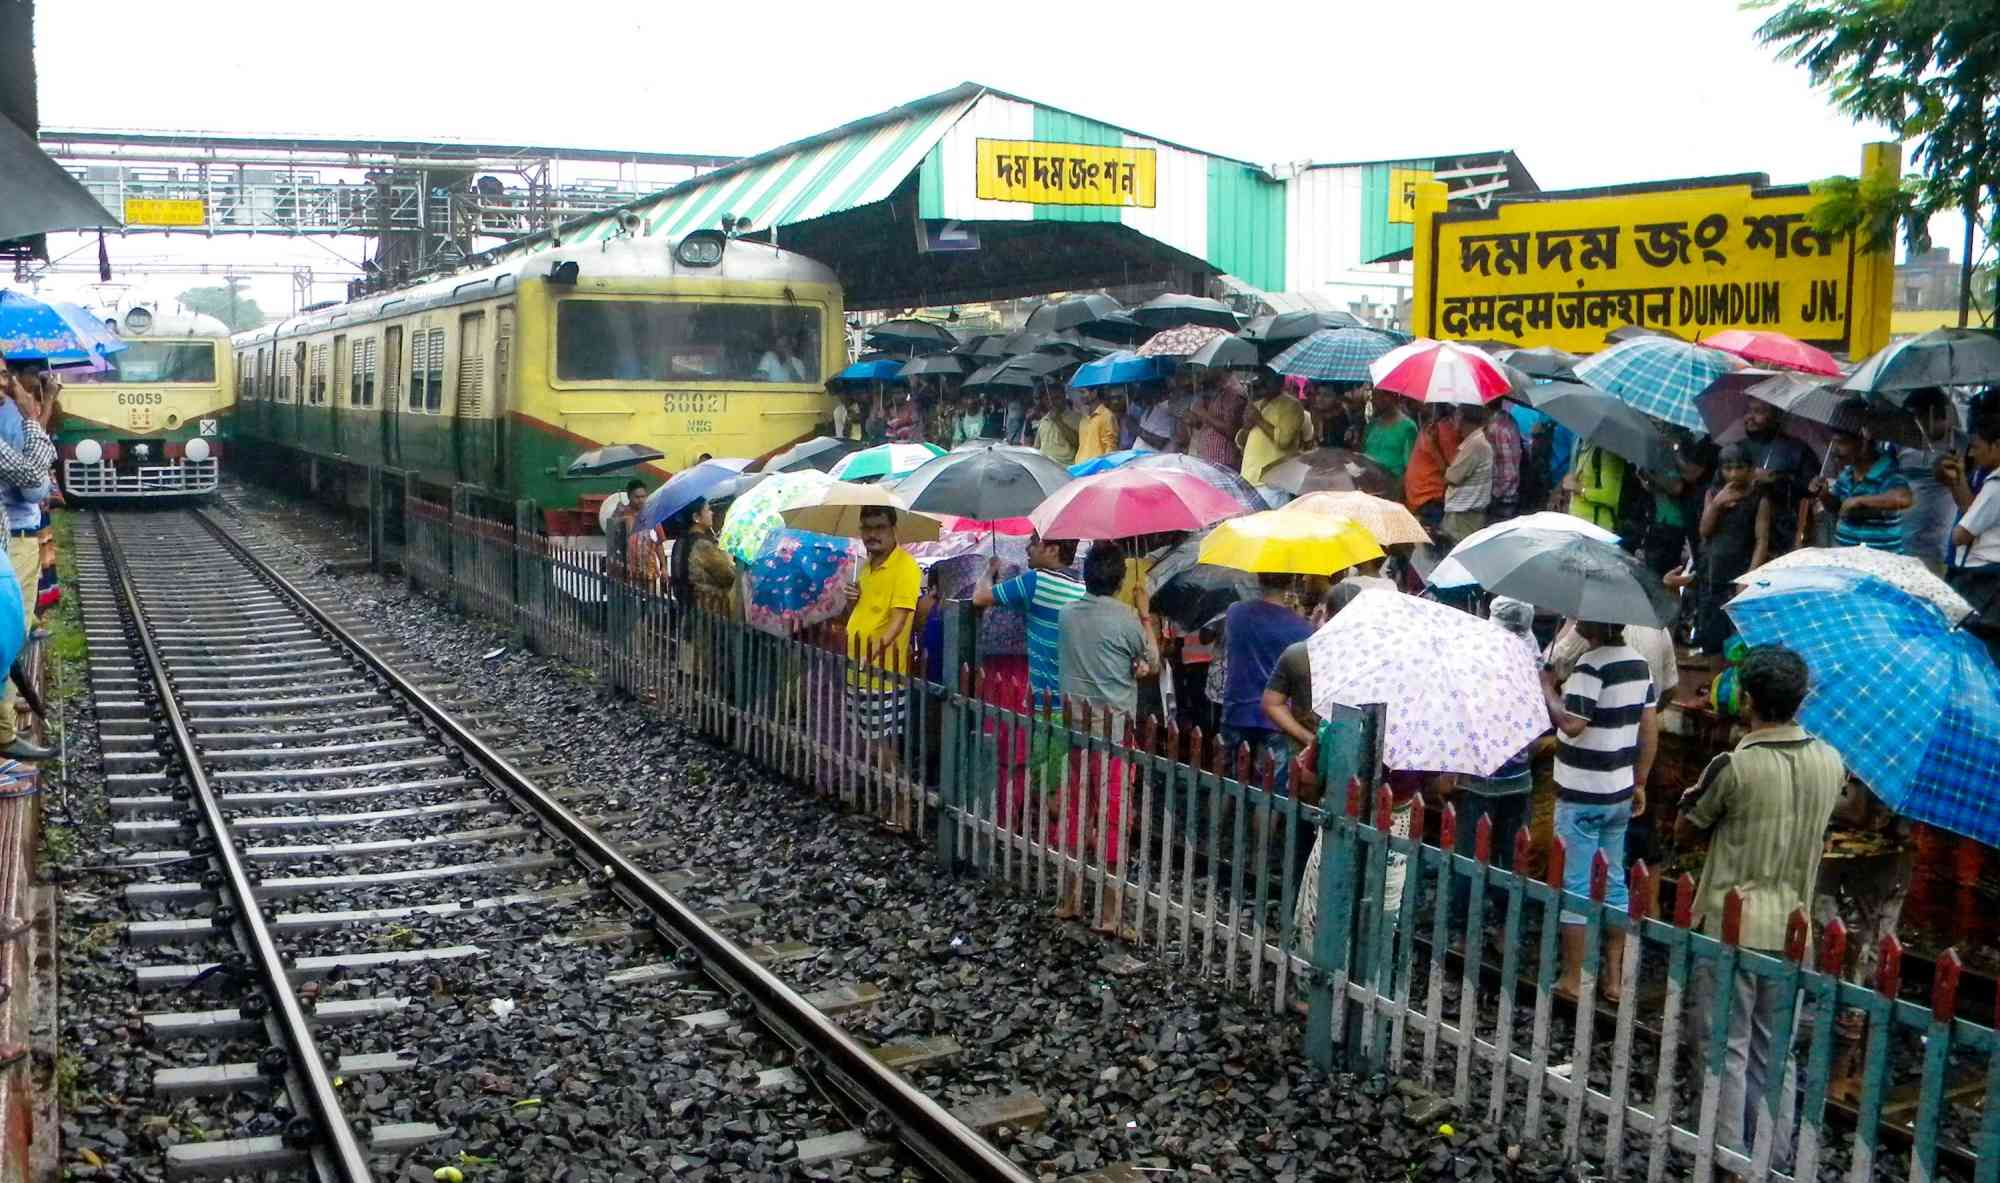 The All India Matua Mahasangha organised a rail blockade in a Kolkata suburb in August 2018 to protest against the exclusion of the Matuas from the NRC draft in Assam. Photo credit: IANS